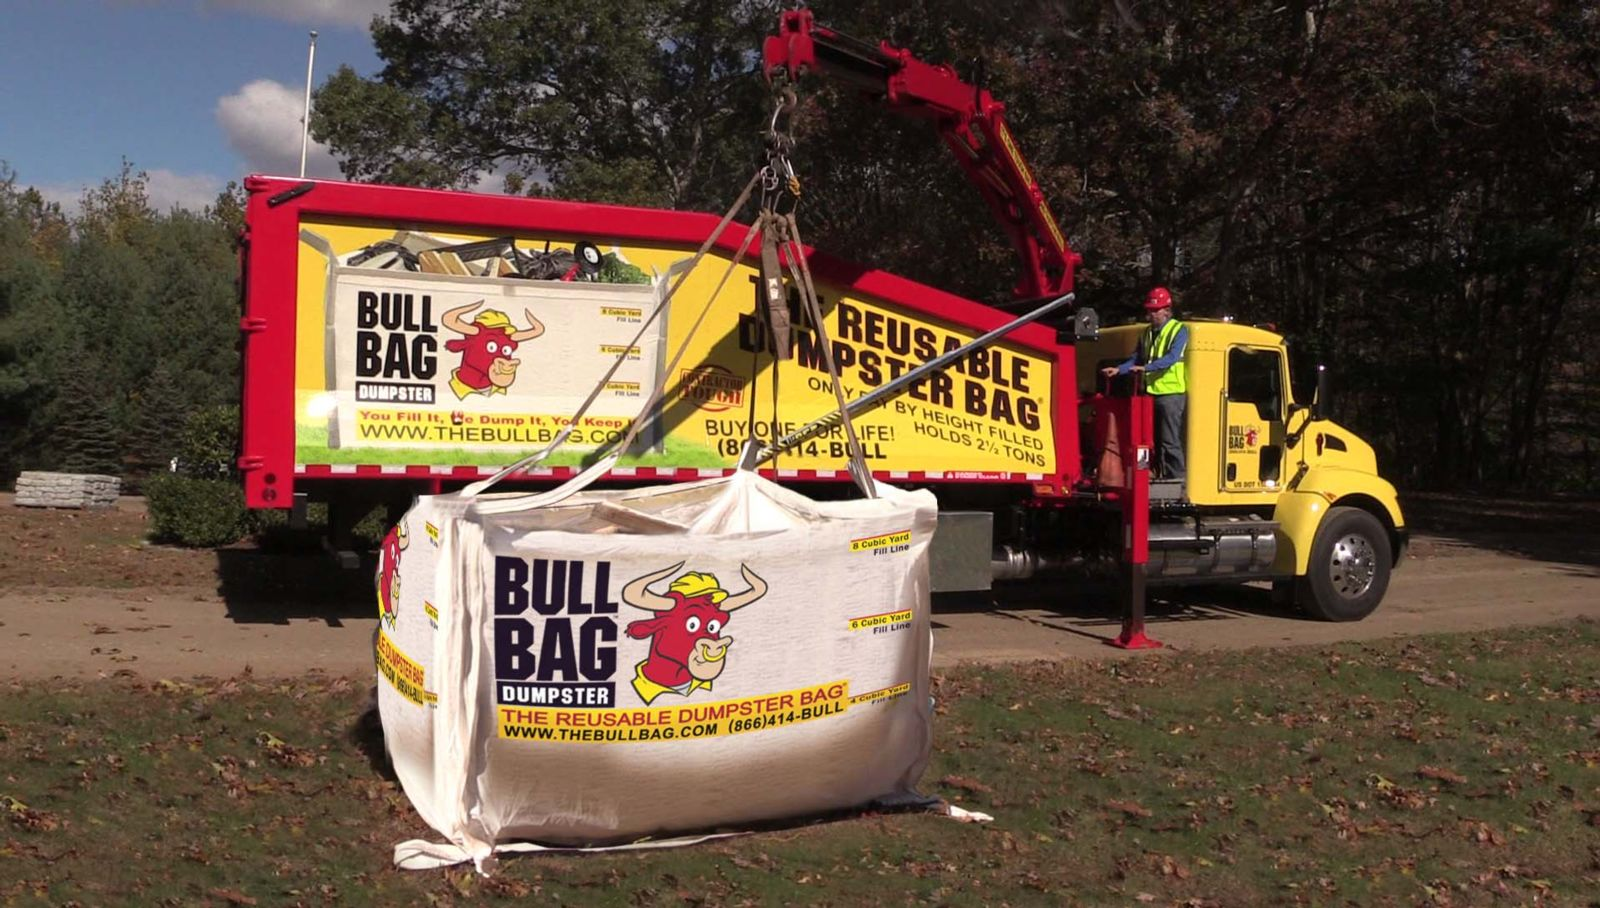 You Fill It Bullbag Wranglers Arrive At Your Location Within 2 Business Days Of Requesting A Disposal